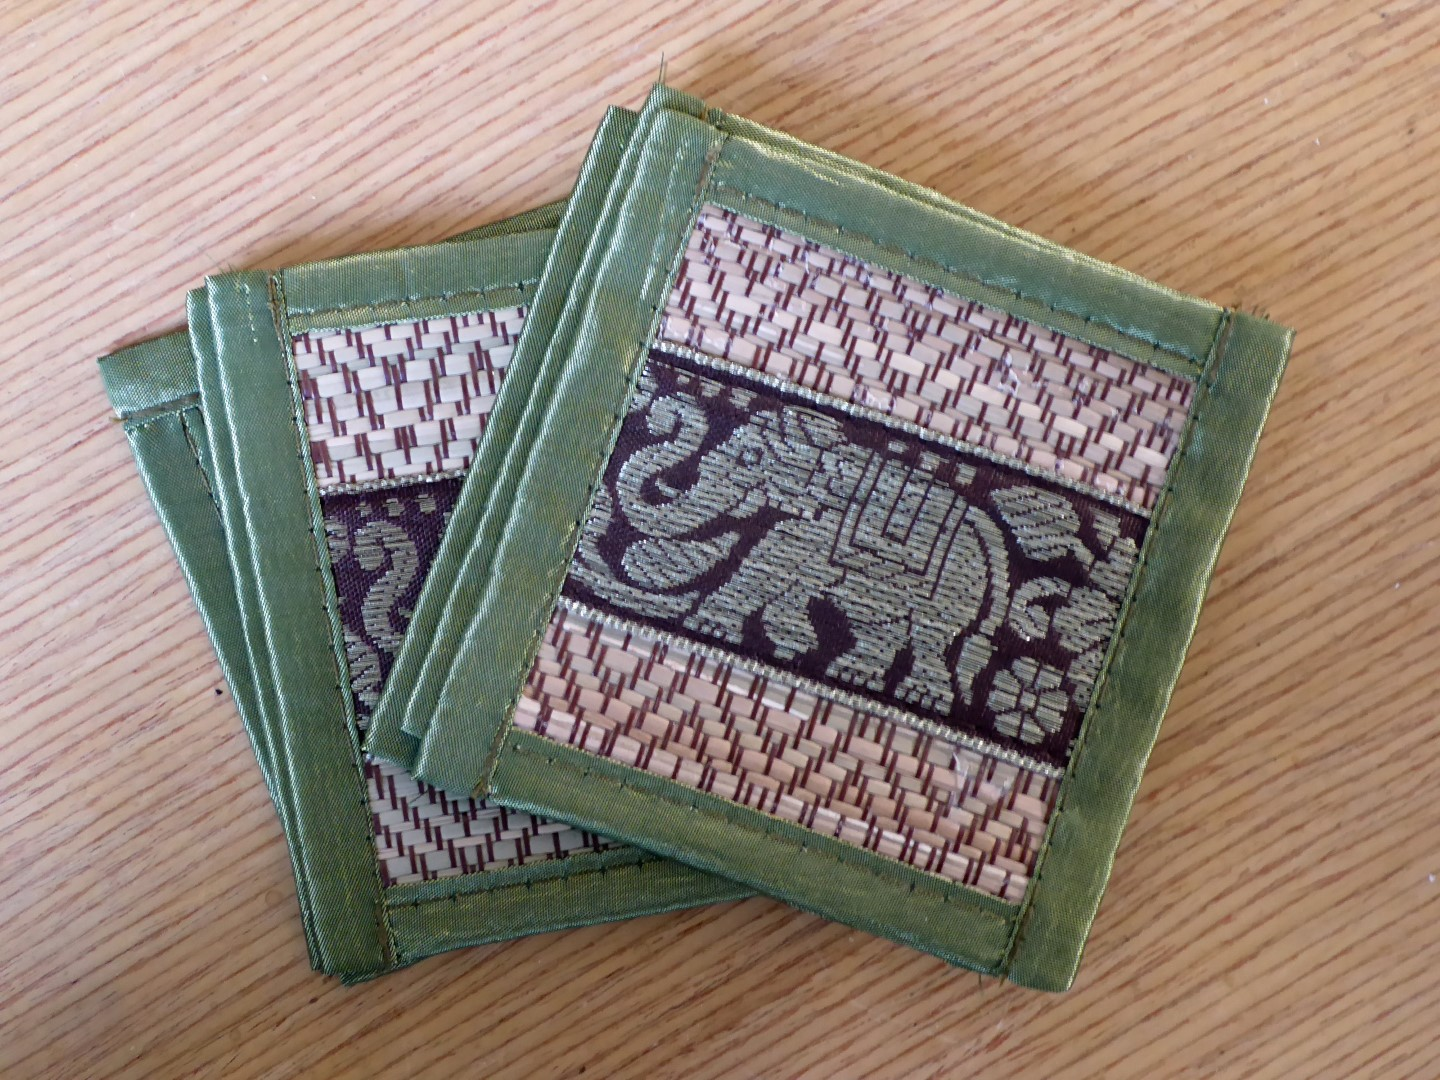 Woven coasters with elephant design